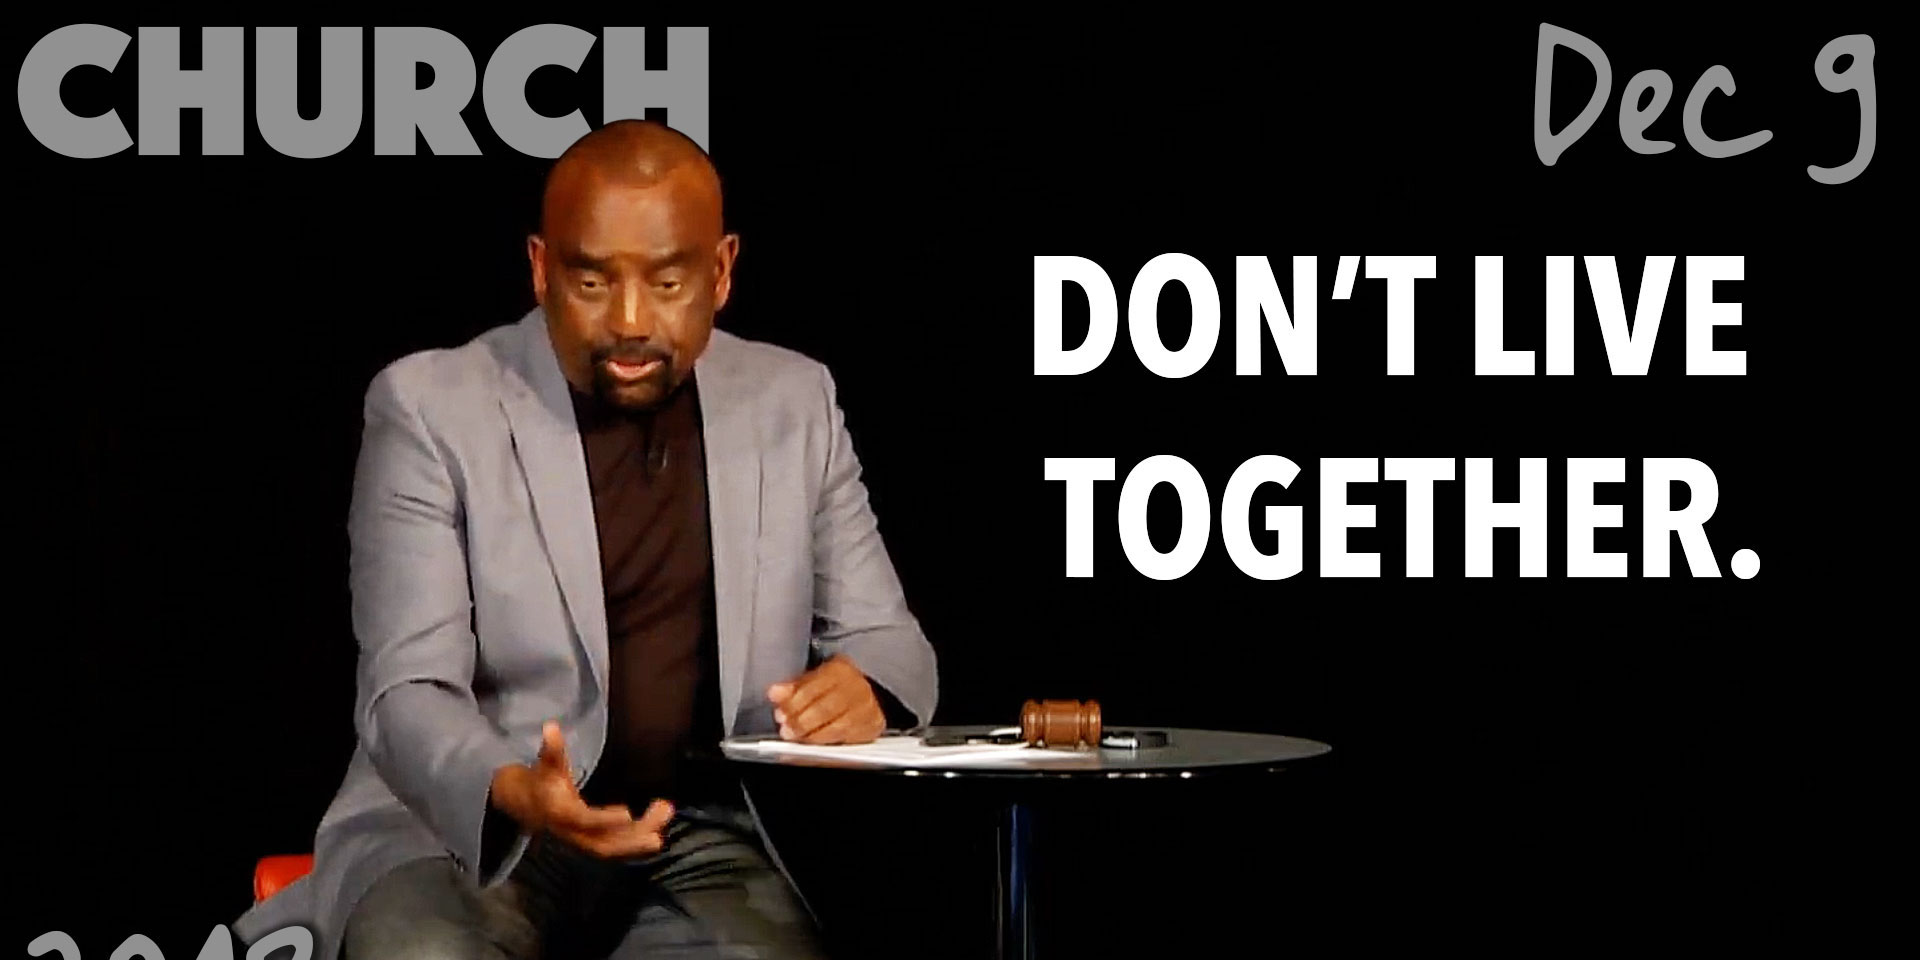 Church Dec. 9th: Don't Live Together Unmarried